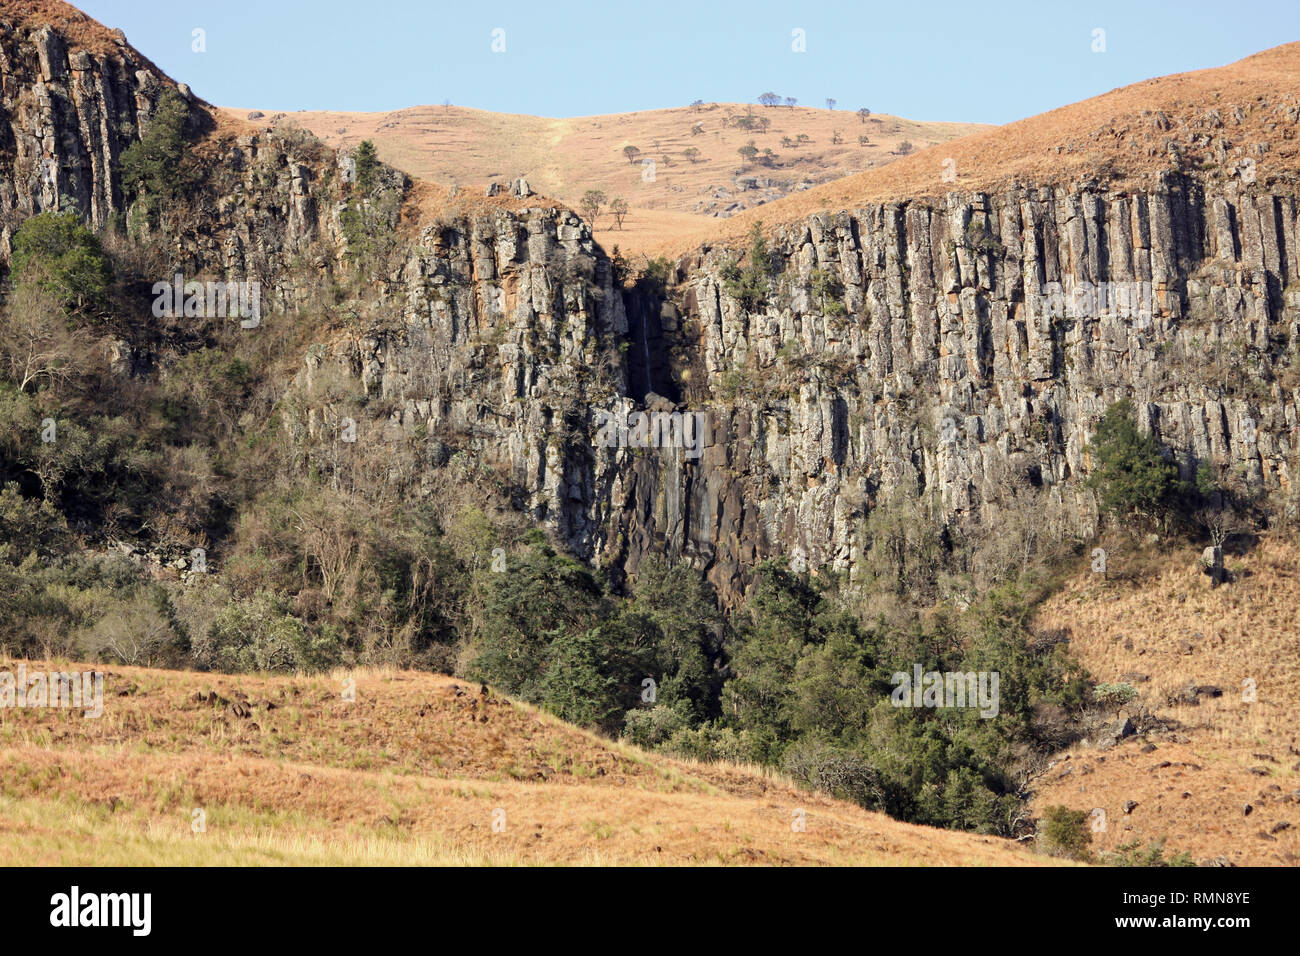 Basalt Columns in Drakensburg Mountains, Kwazulu Natal, South Africa Stock Photo